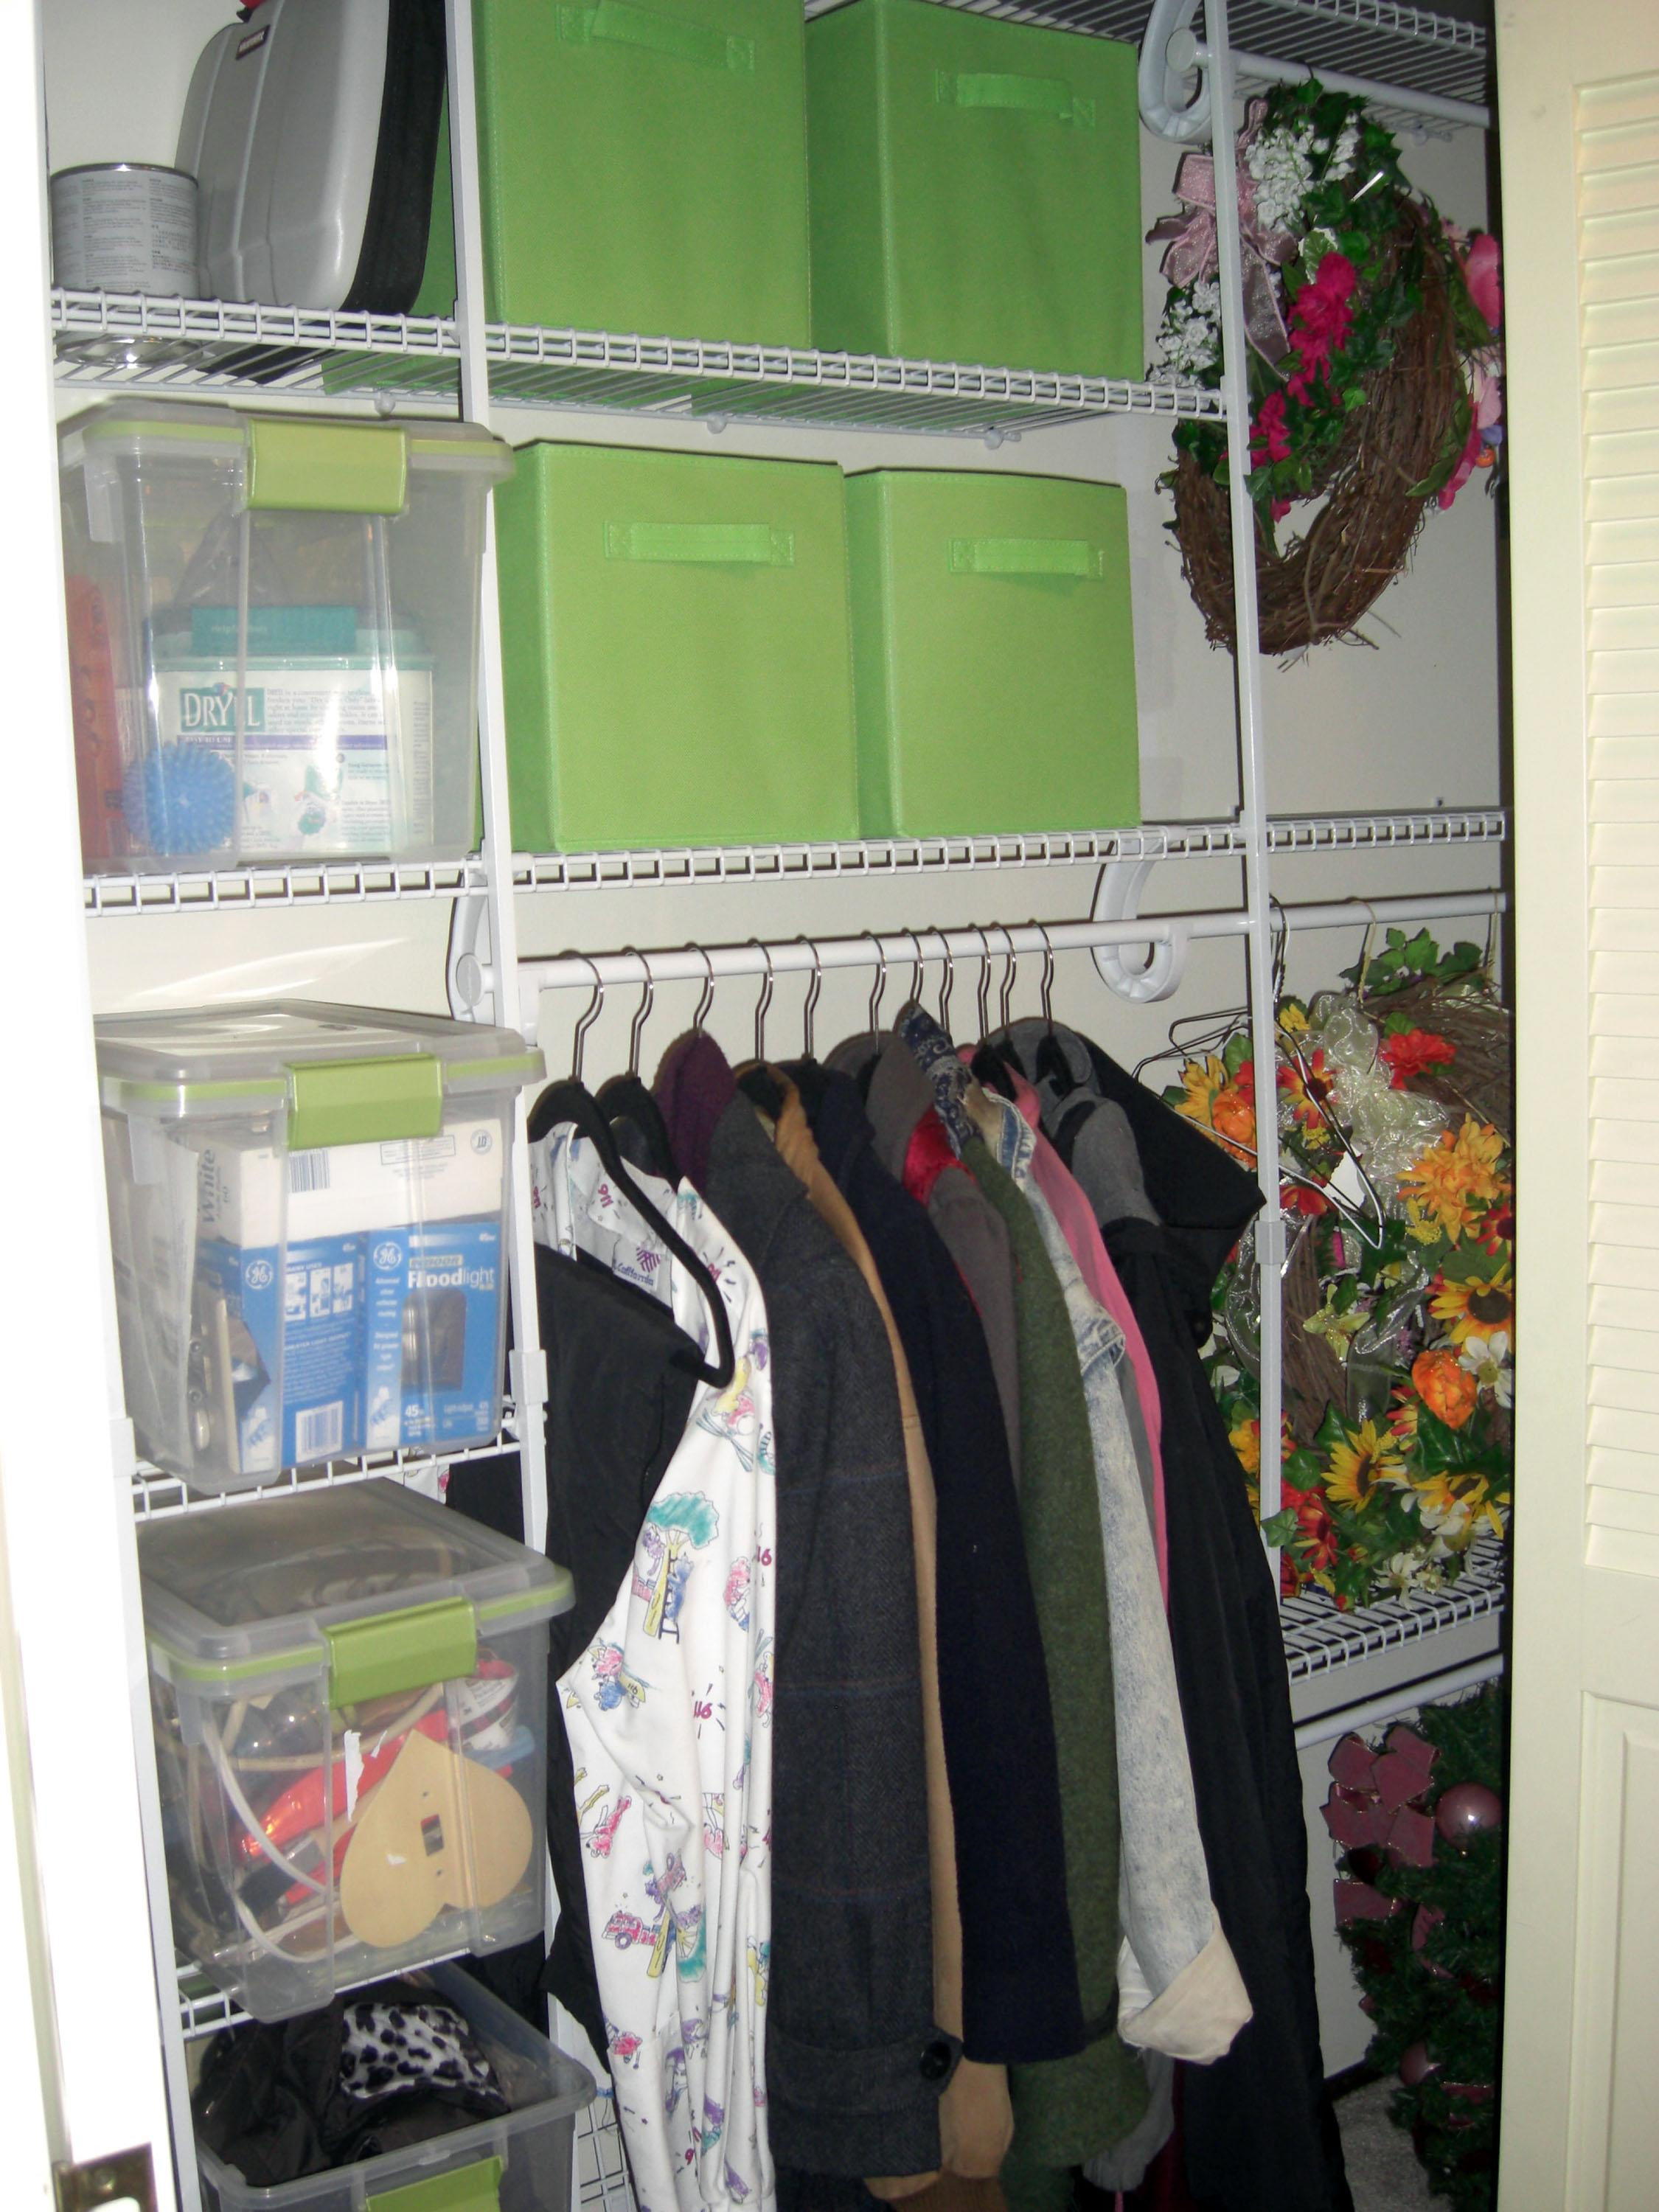 In this undated image released by Seriously Organized, a redesigned closet utilizing new shelving and storage bins is shown after an organization project. Nikki Havens of Seriously Organized in Bloomington, Minn., recommends starting with your entry hall closet. Small closet or walk-in, it's important to use the most convenient spot in your home to your advantage. (AP Photo/Seriously Organized)